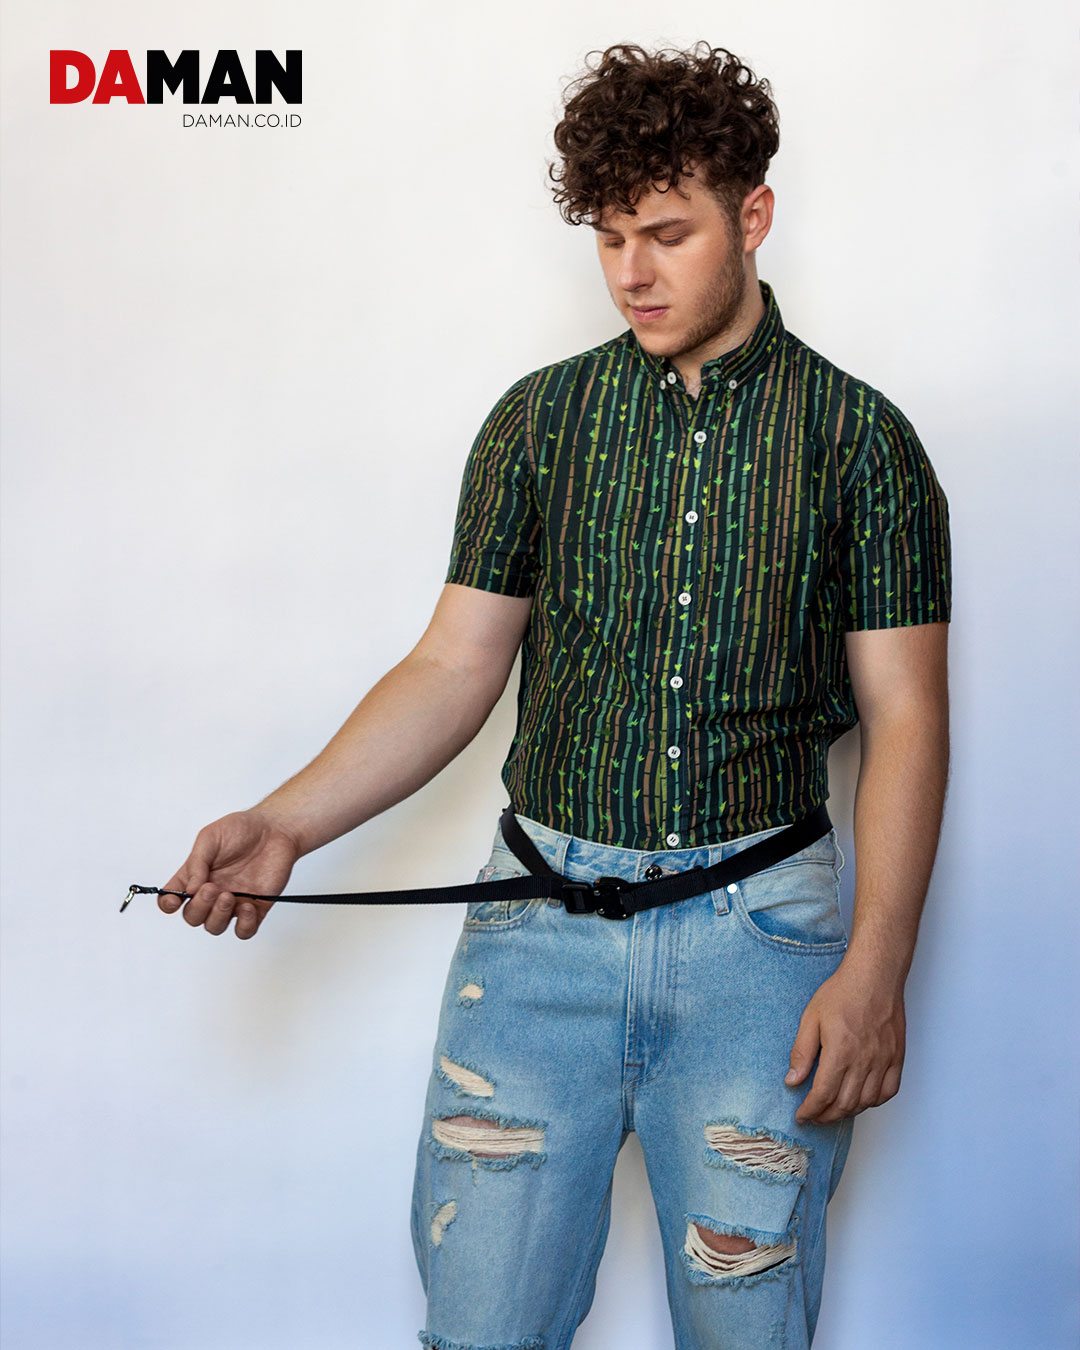 Shirt by Oxford Lads; jeans by Guess; belt by Atomic Mission Gear